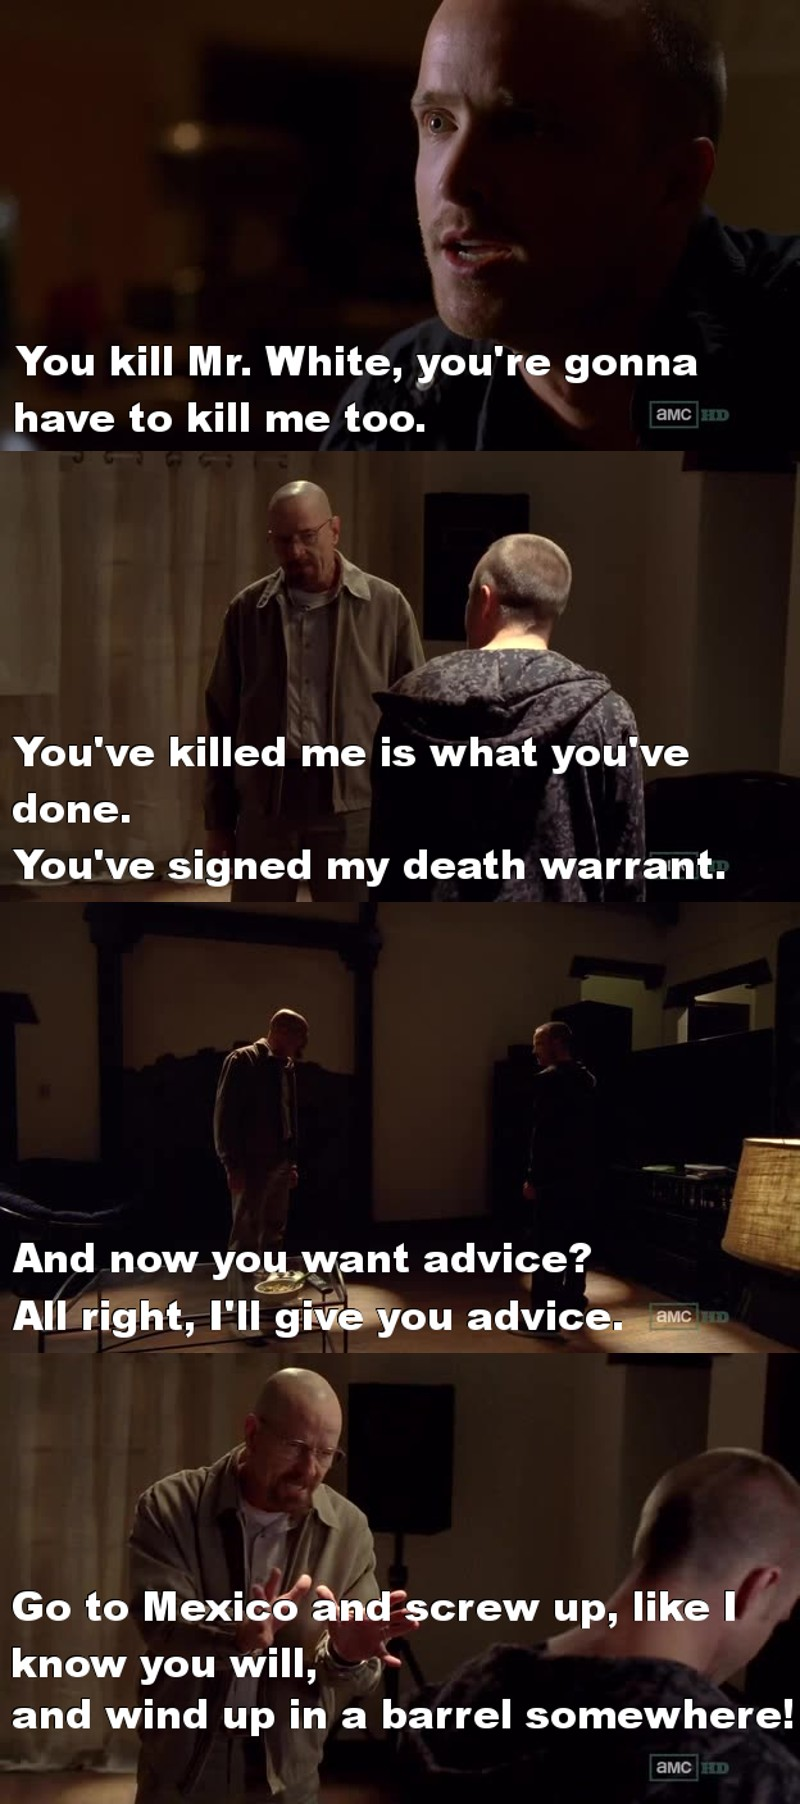 Jesse would do anything for Mr. White, while Walt is just an asshole sometimes. I hate how he treated Jesse :(